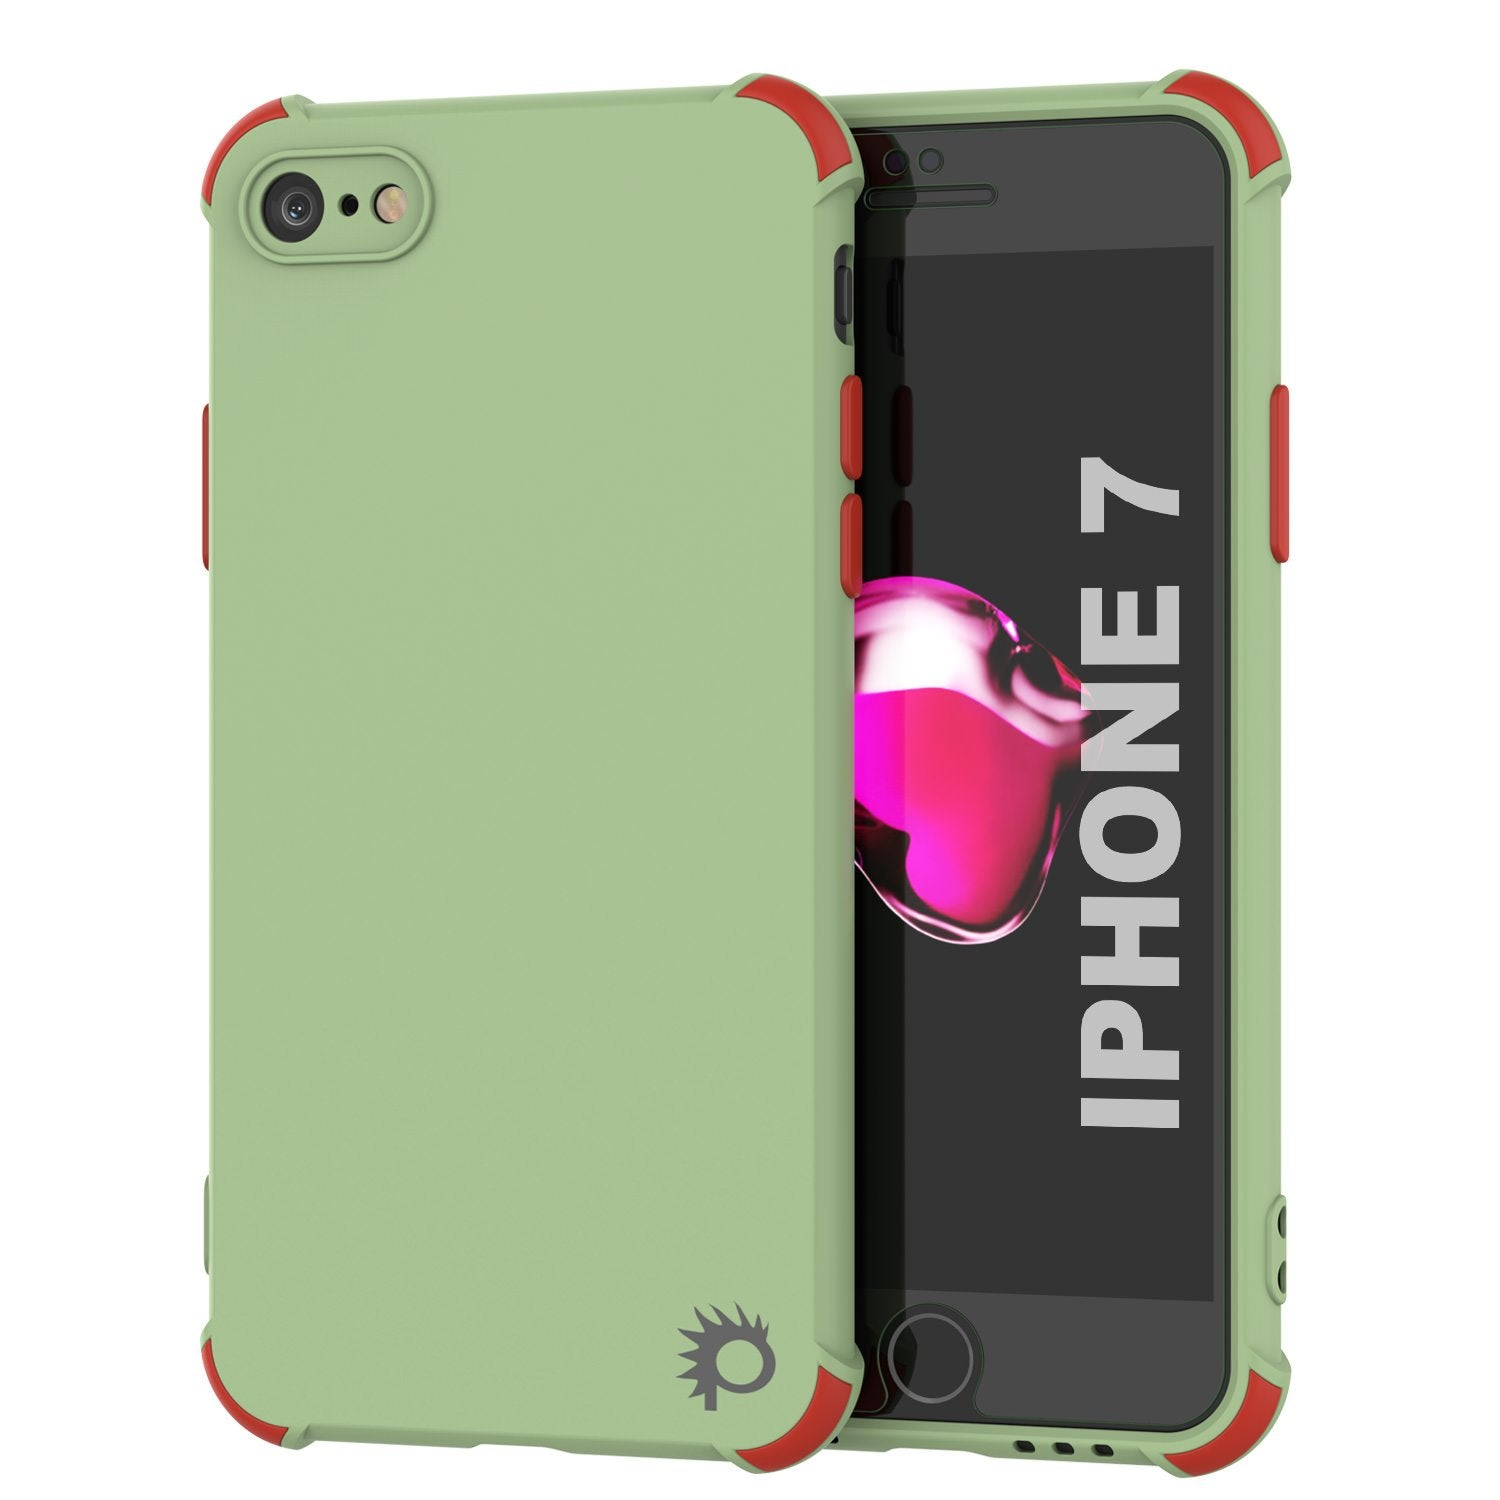 Punkcase Protective & Lightweight TPU Case [Sunshine Series] for iPhone 7 [Light Green]